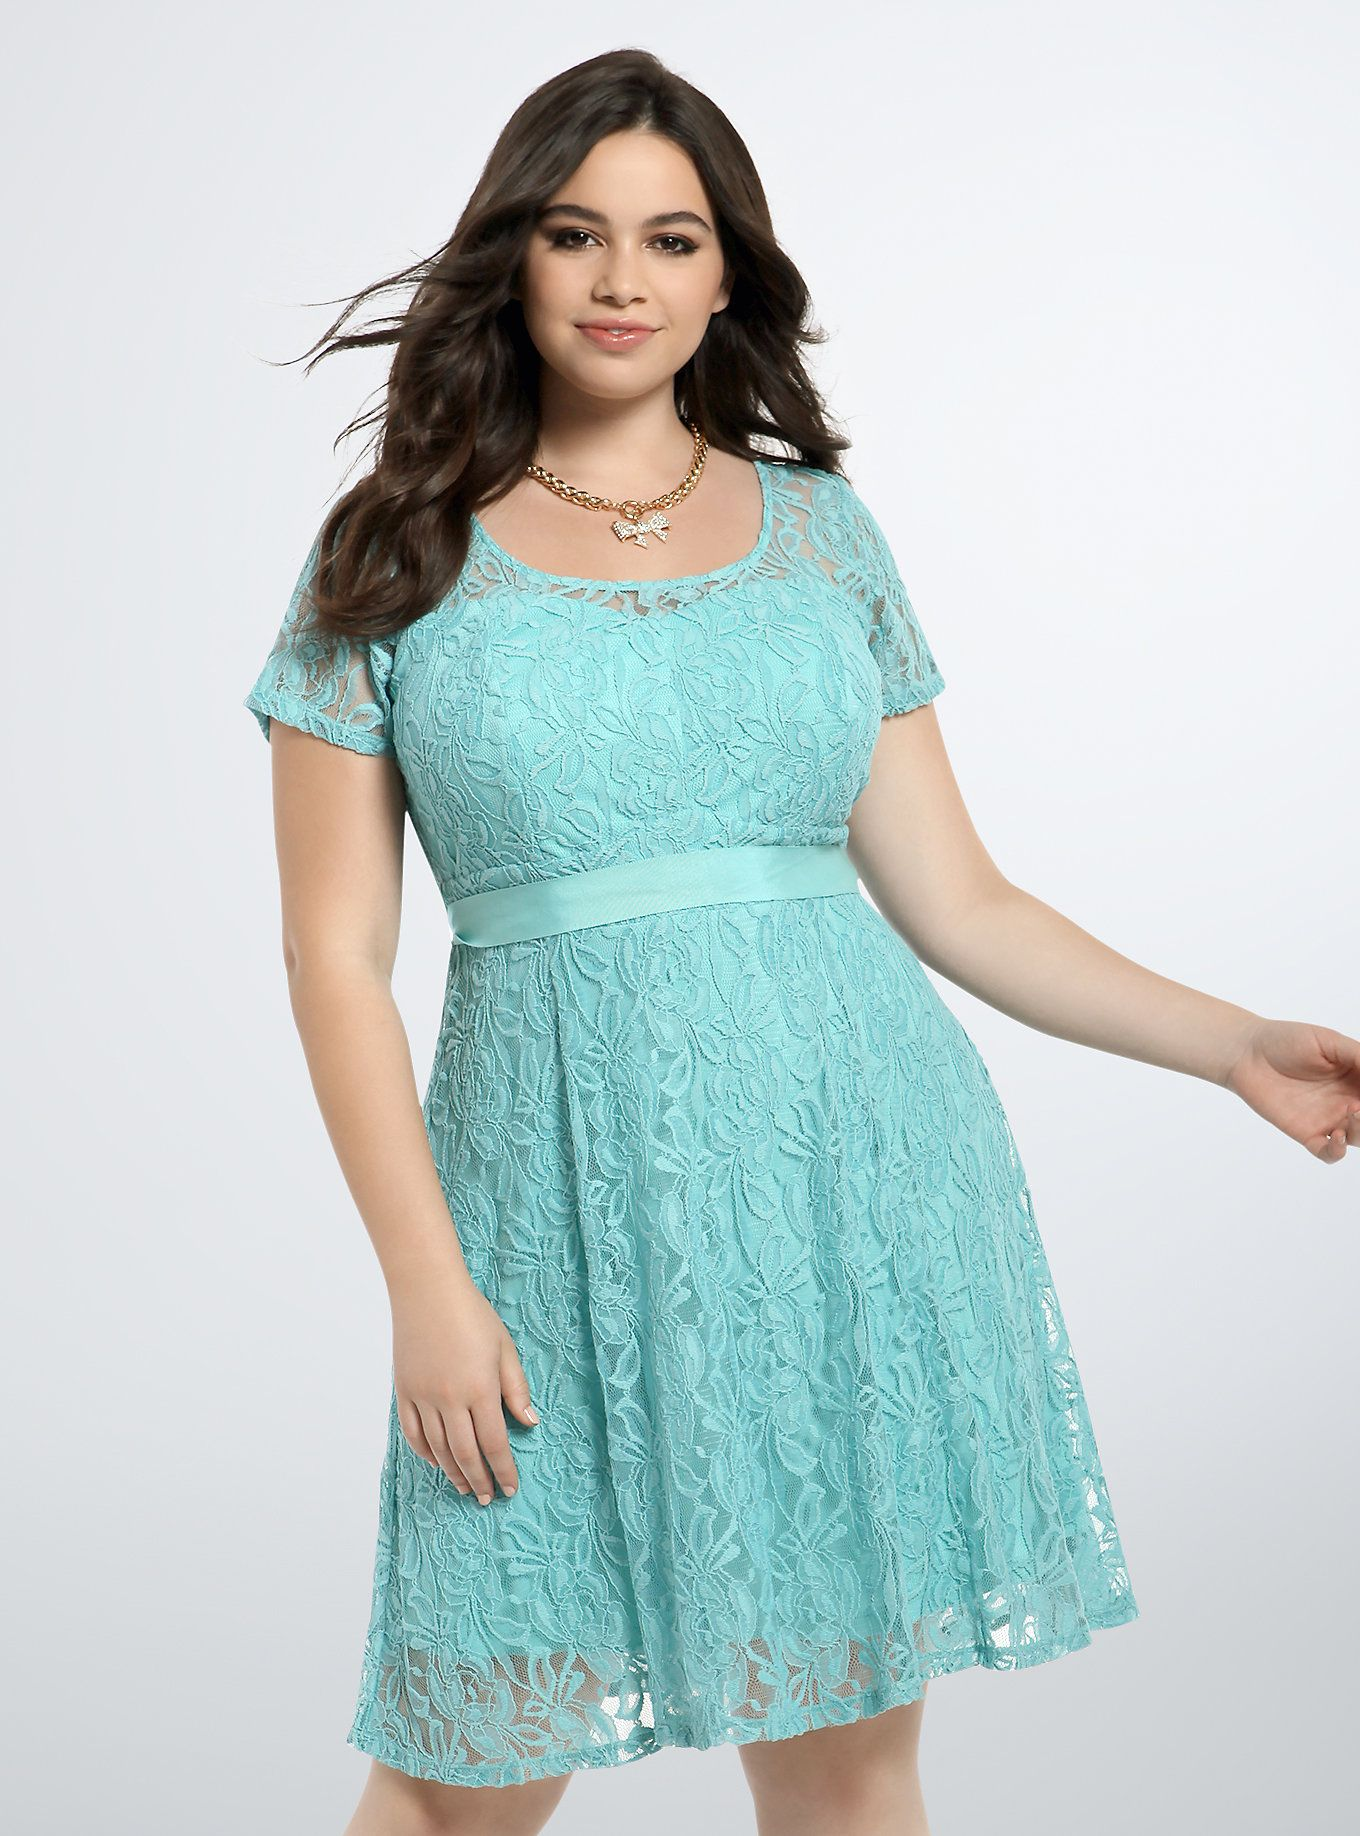 Lace Illusion Dress | Illusion dress, Illusions and Torrid